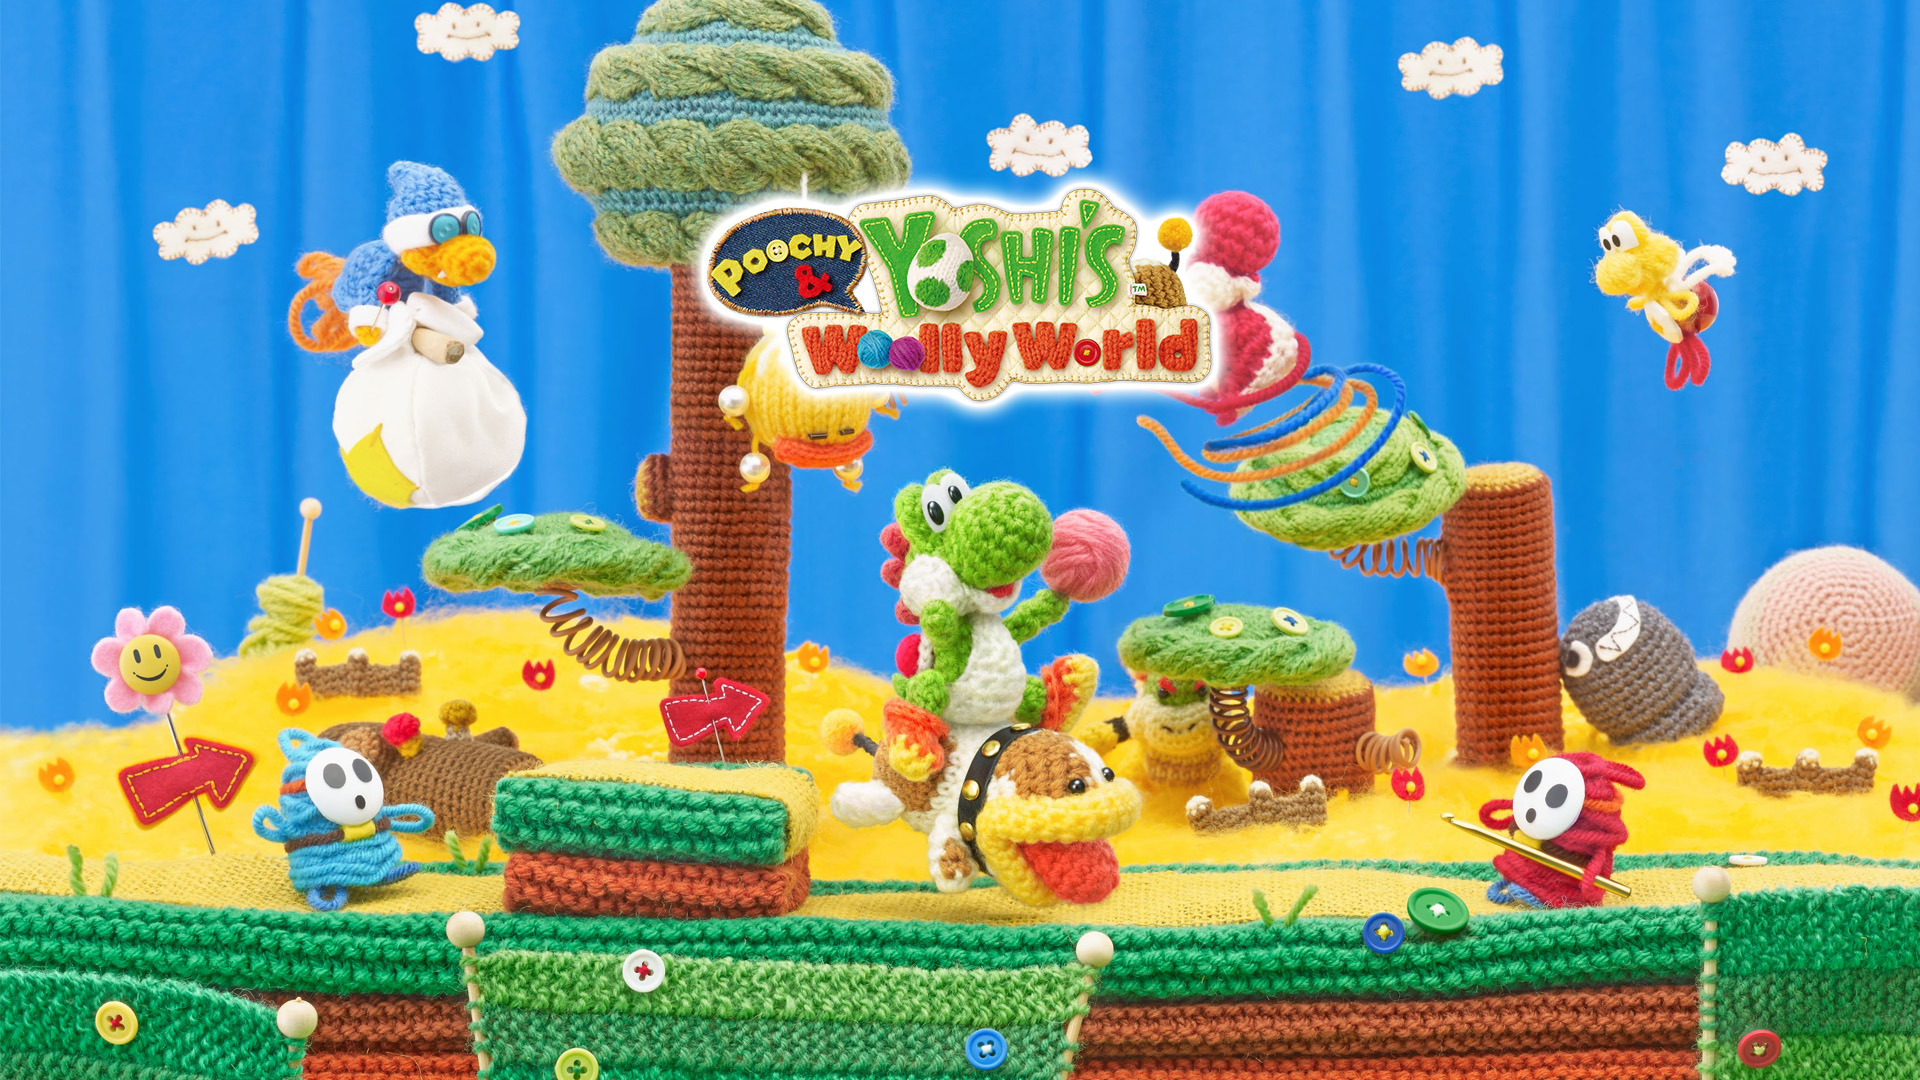 Poochy-Yoshi-Woolly-World-wallpaper-logo-nat-games